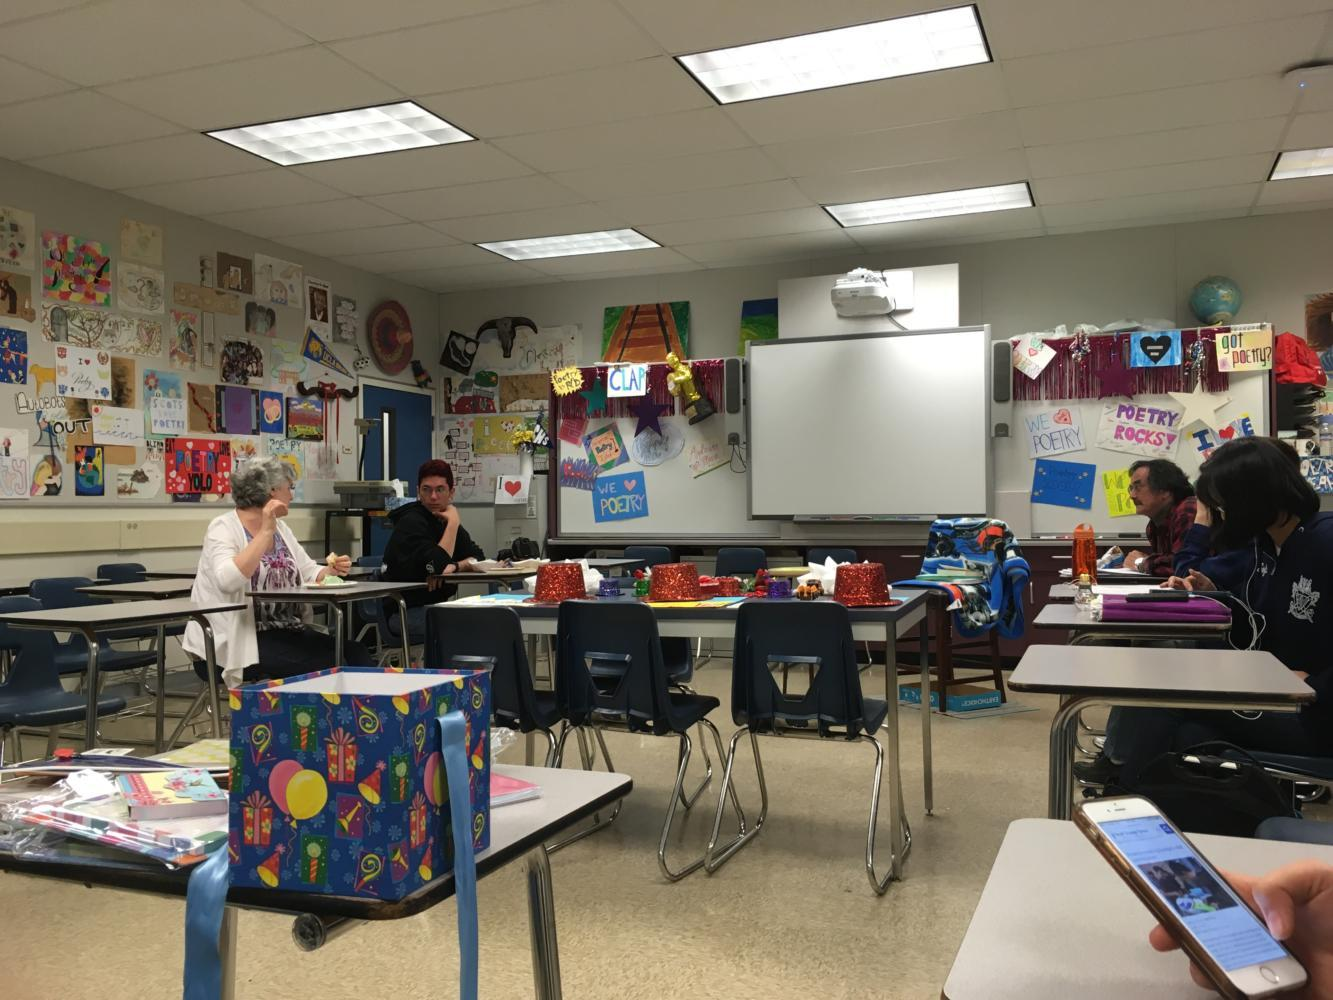 Members of Creative reWriters gather to discuss future plans in the colorful room of Mrs. Wallace.